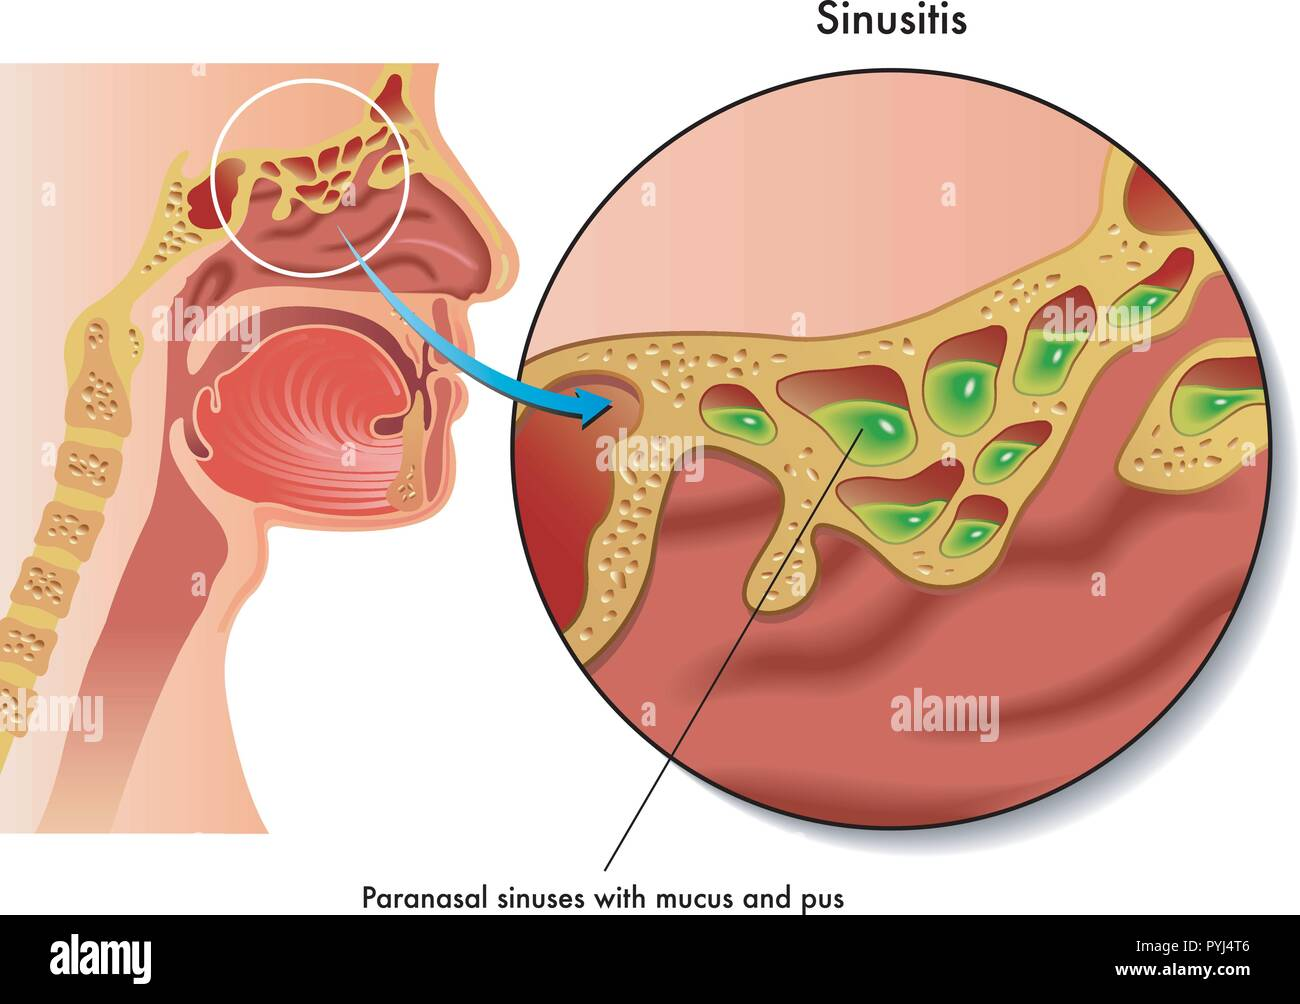 medical illustration of the effects of sinusitis - Stock Image